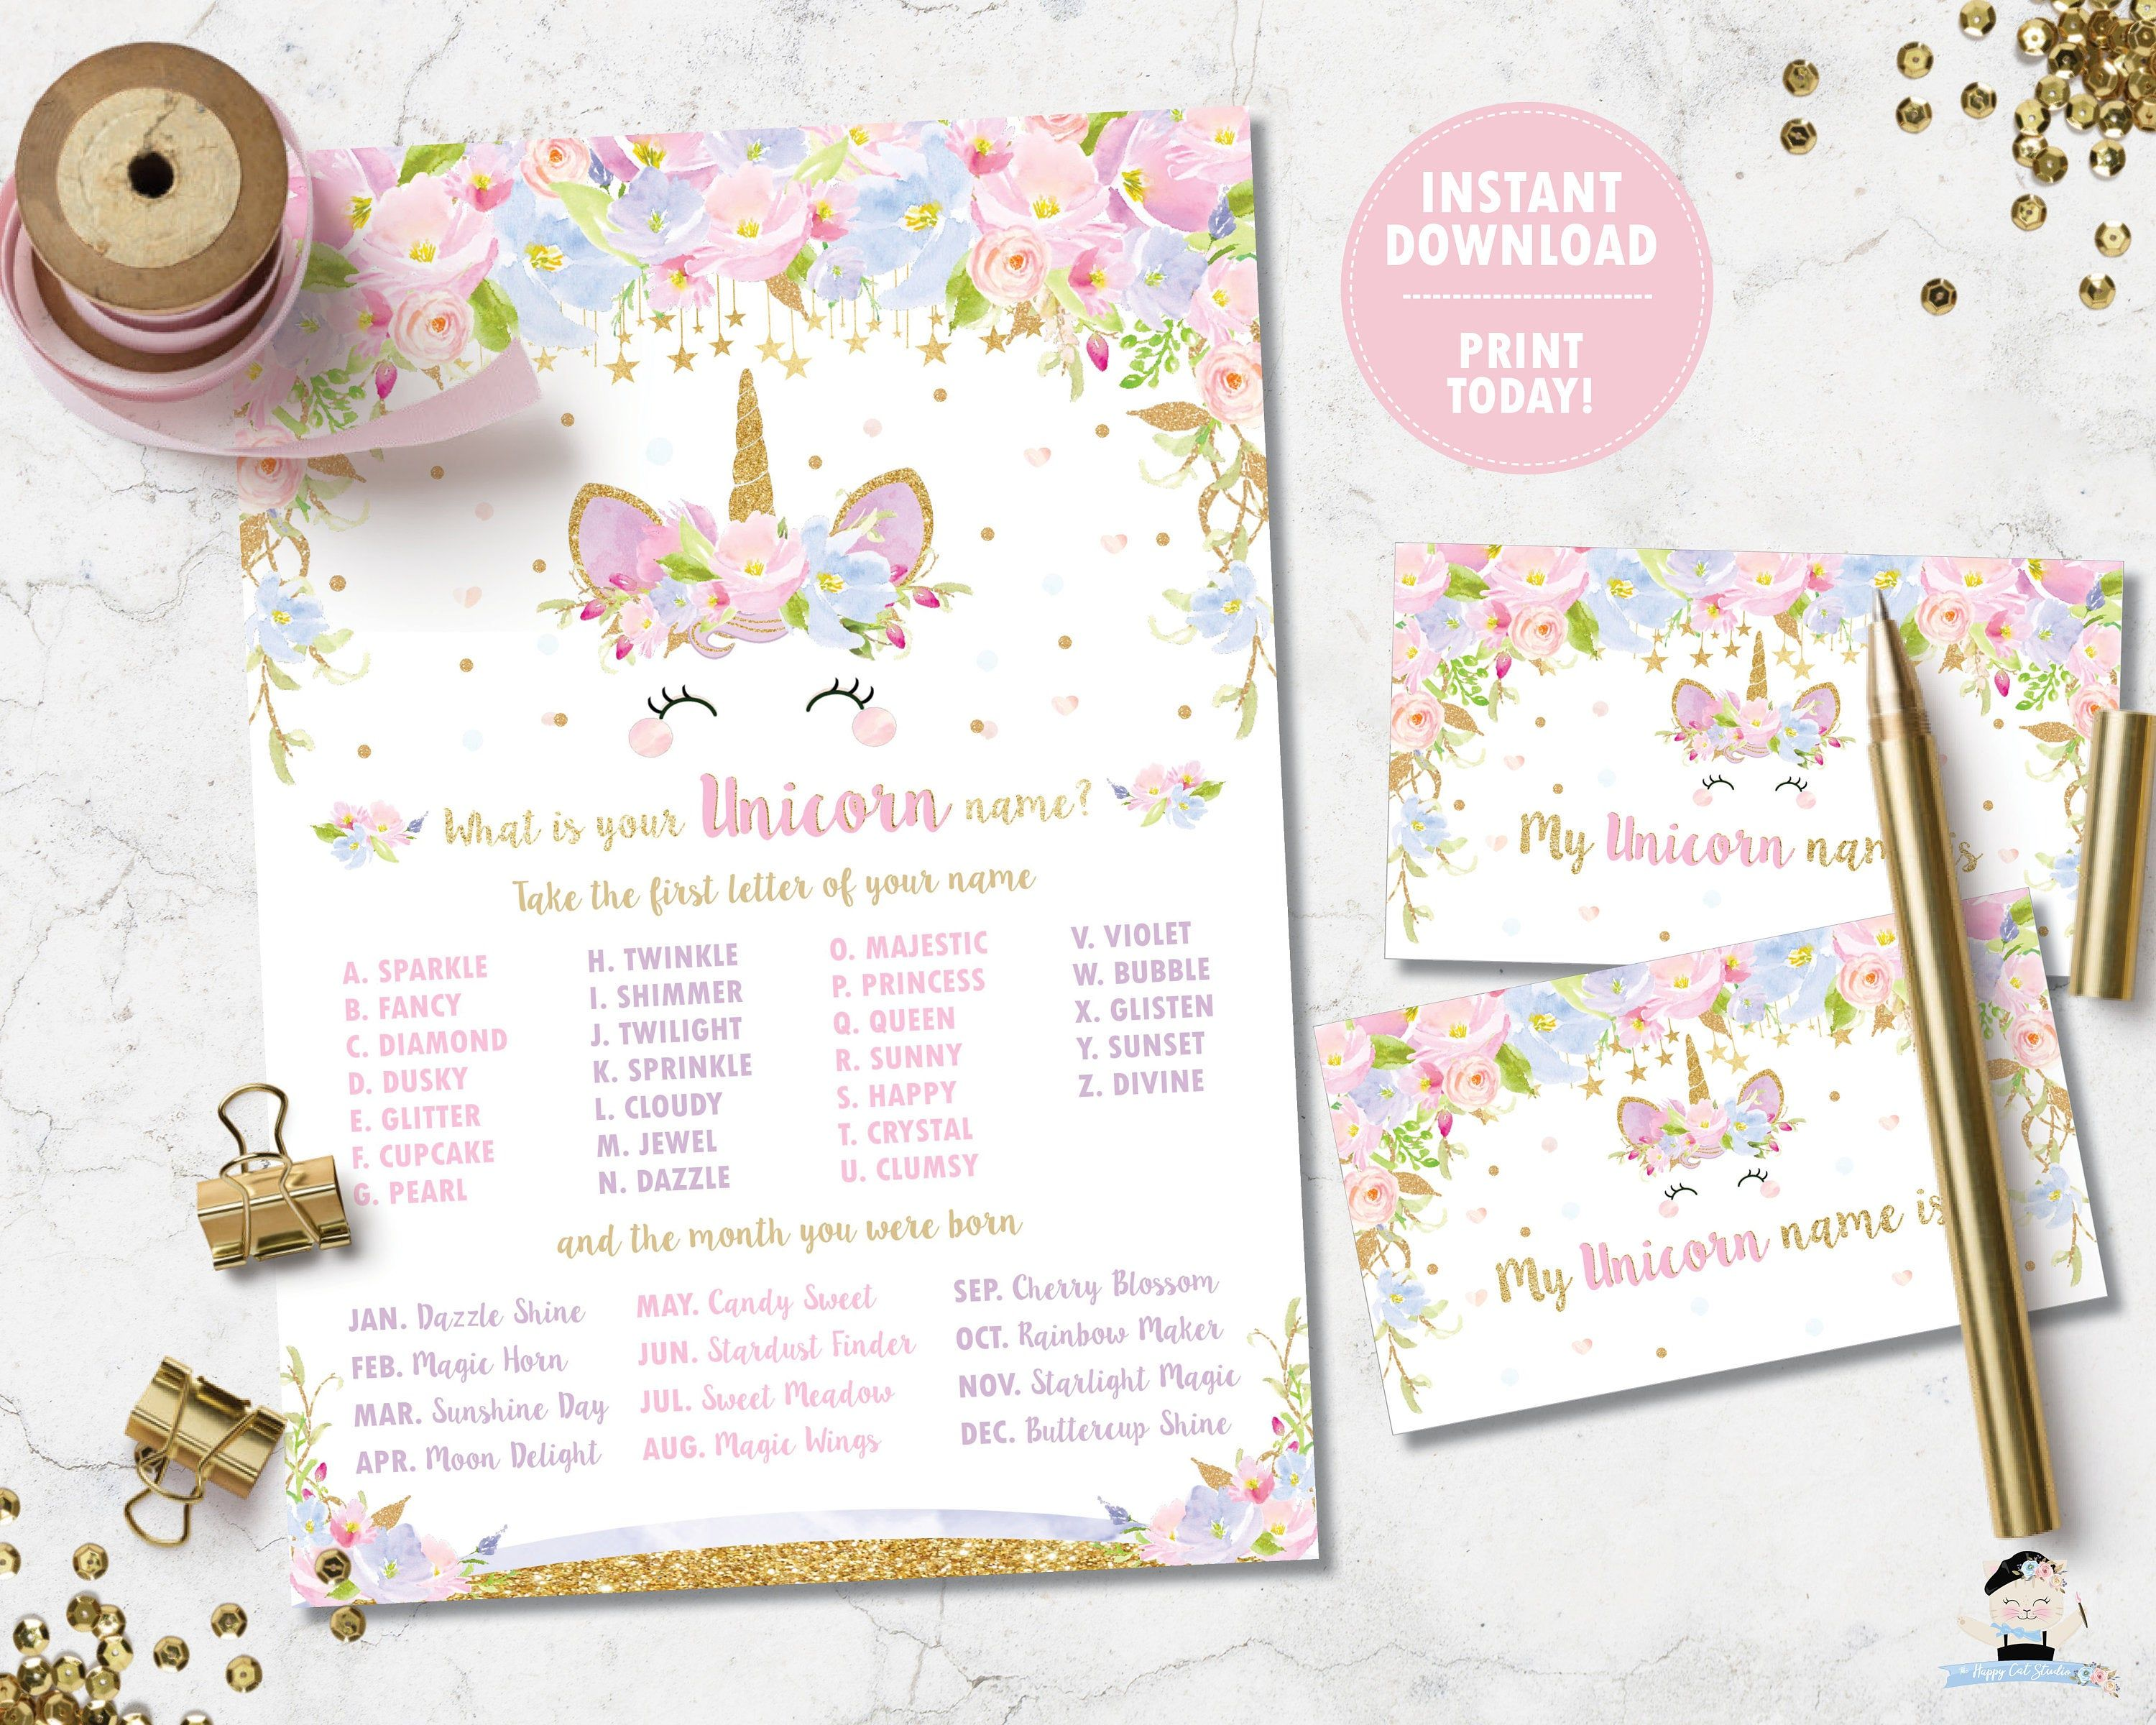 Unicorn Name Game What Is Your Unicorn Name Game Birthday Party Activity Cute Floral Pink B Birthday Party Activities 1st Birthday Games Party Activities